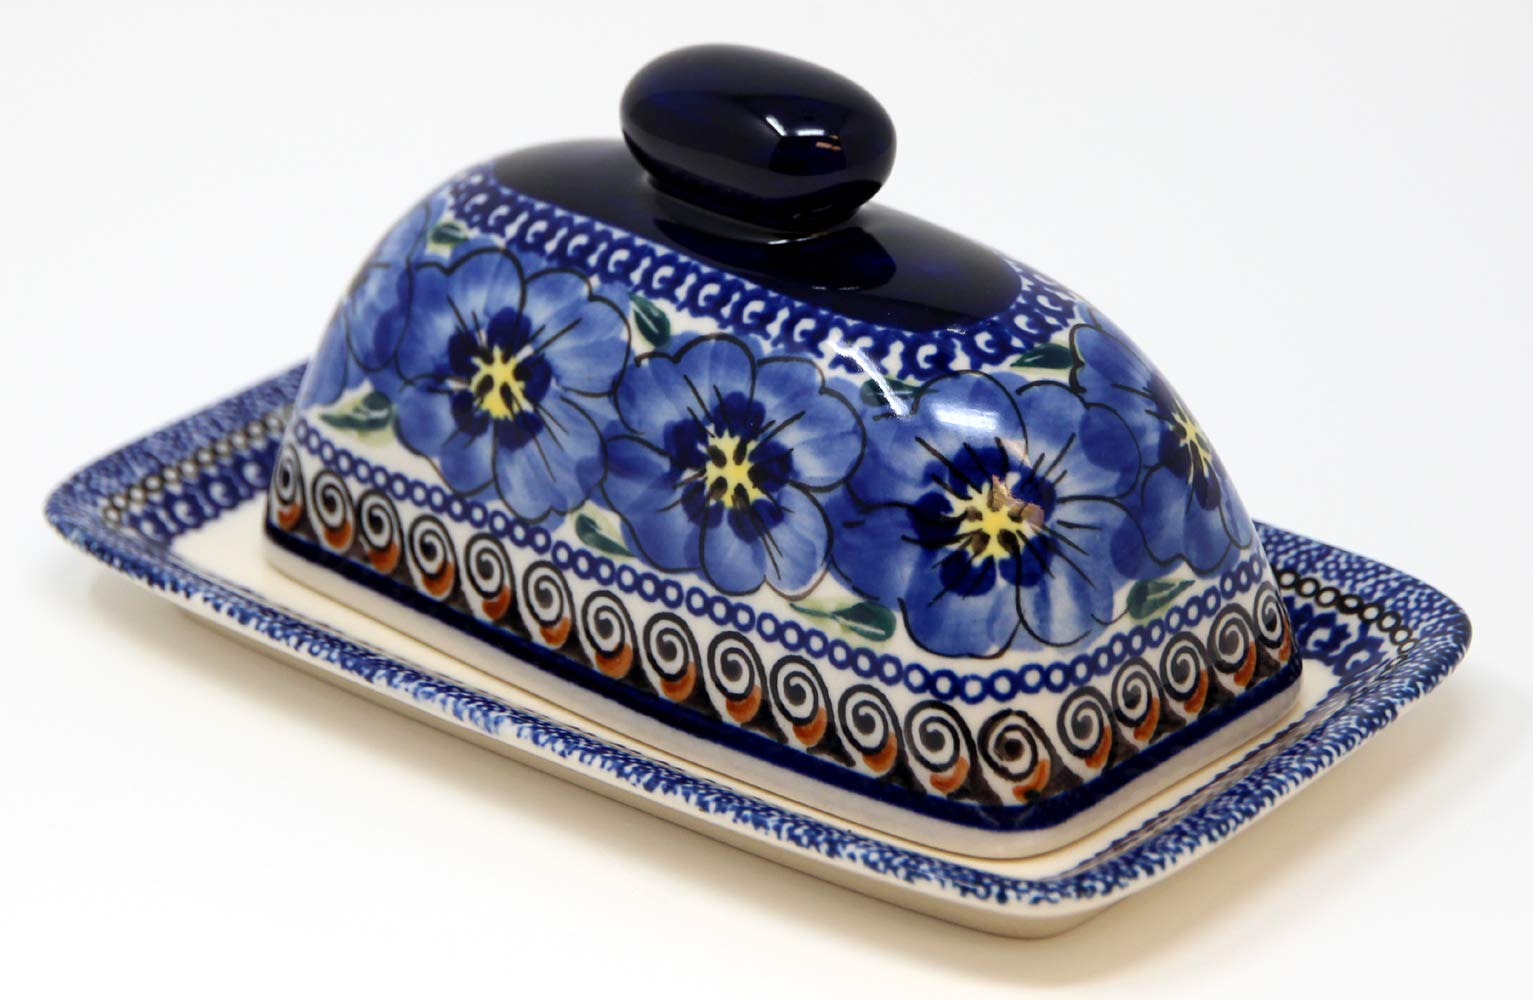 Polish Pottery Butter Dish 4'' X 7'' From Zaklady Ceramiczne Boleslawiec 1377-148 Art Unikat Signature Pattern, Dimensions: 7.5 Inch X 4.4 Inch